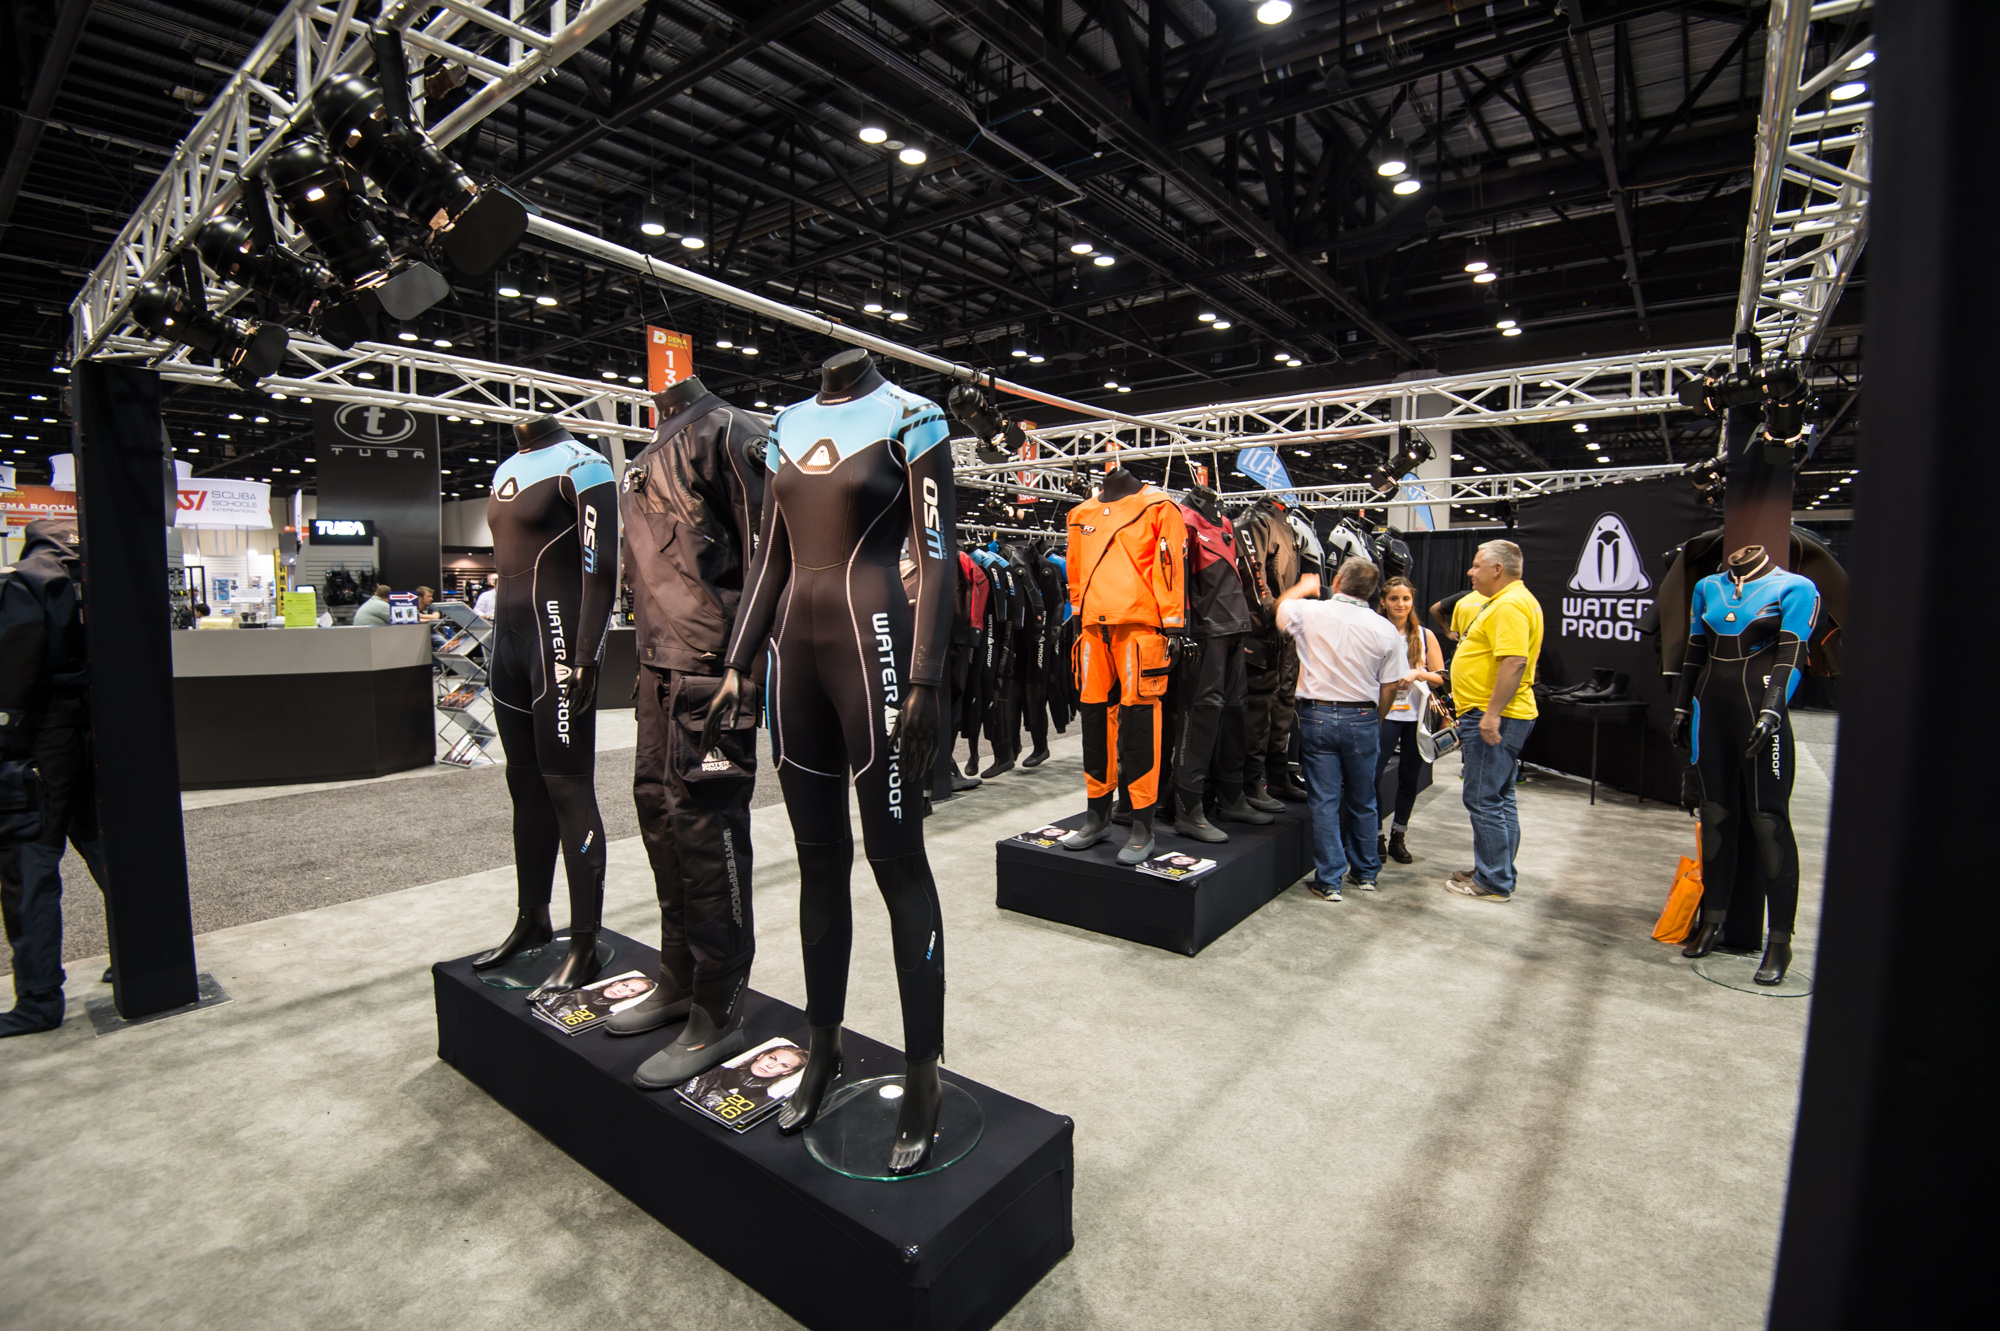 Waterproof showed off a wide variety of drysuits and wetsuits